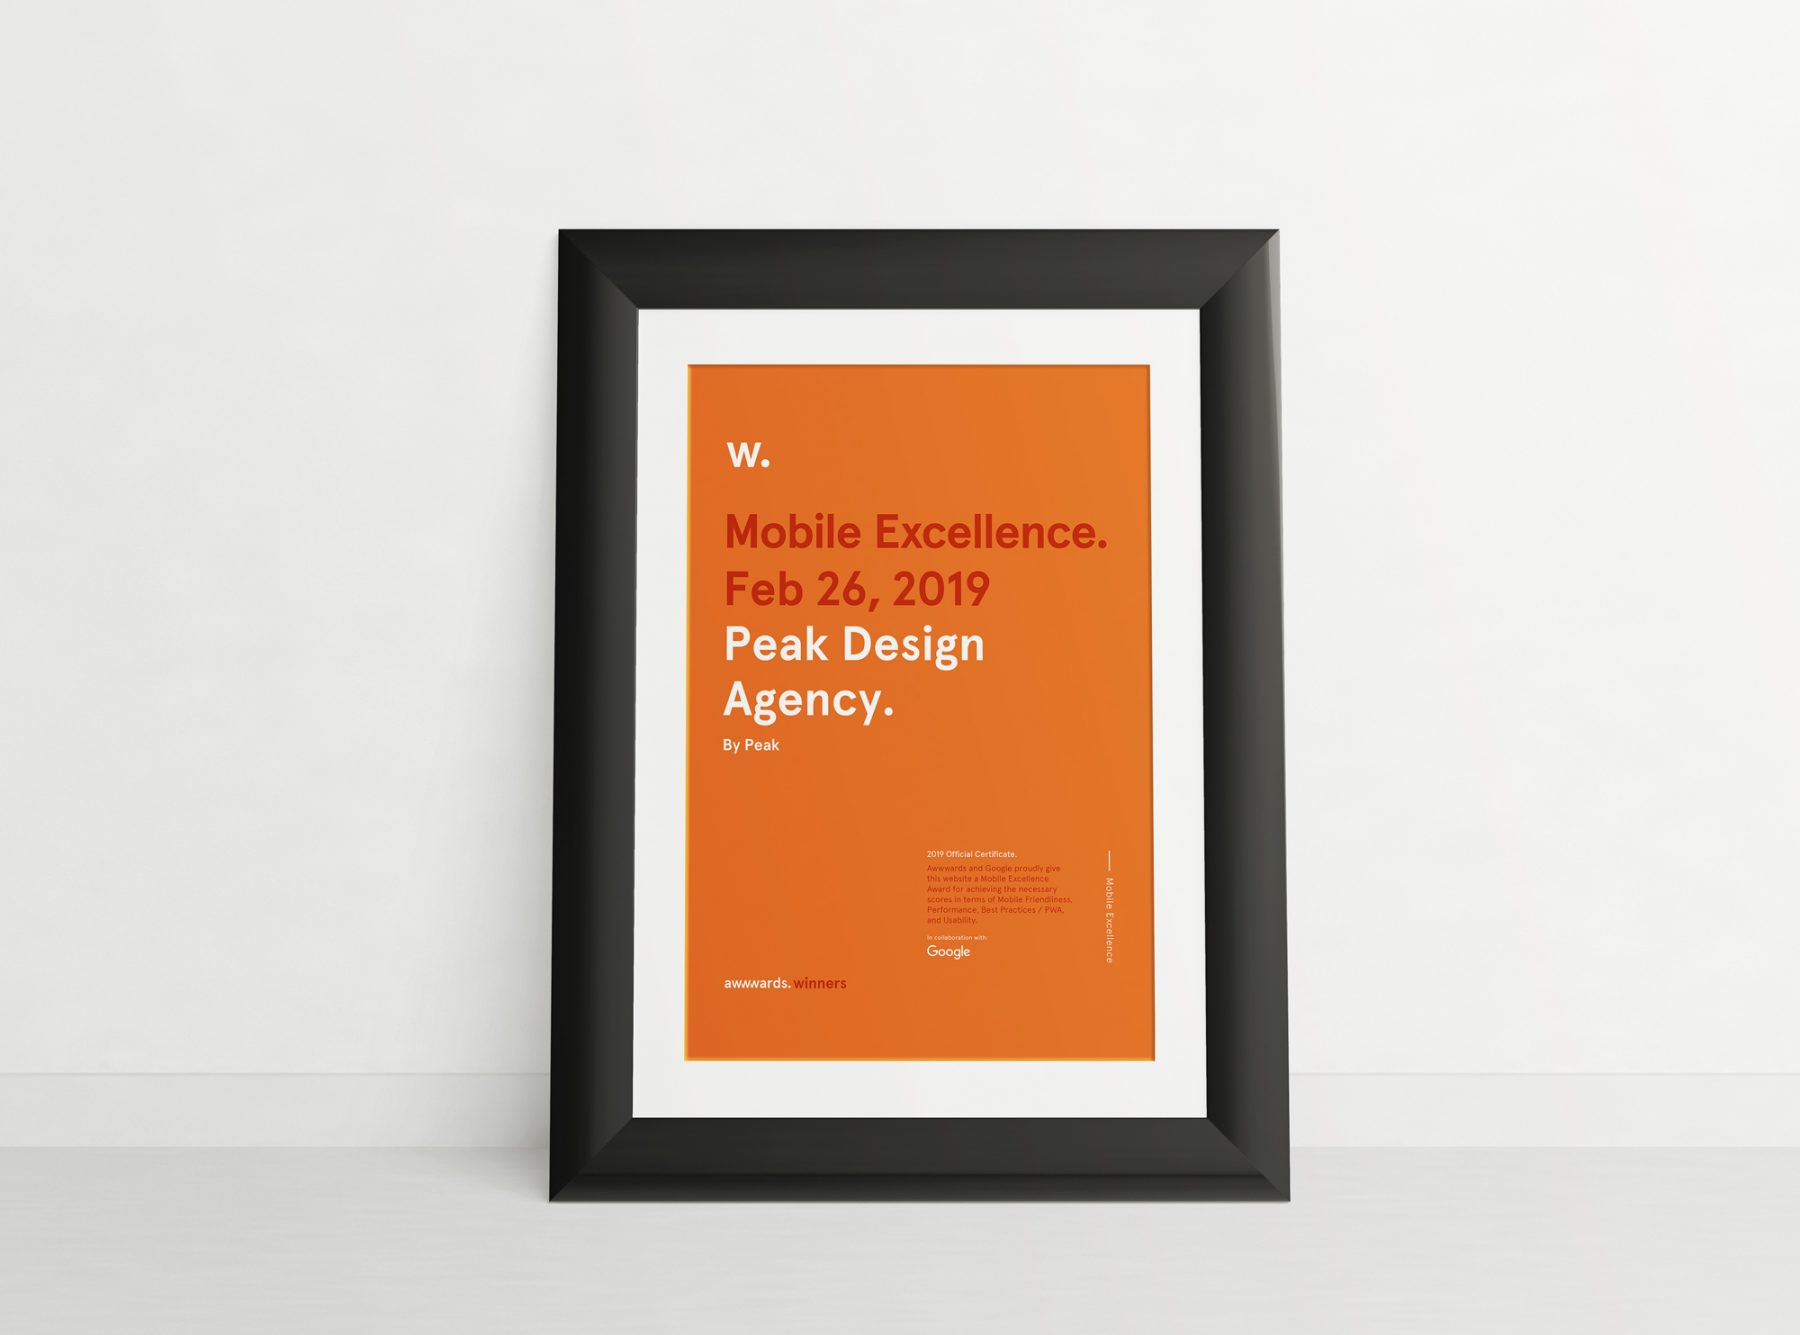 Peak Design Agency Award